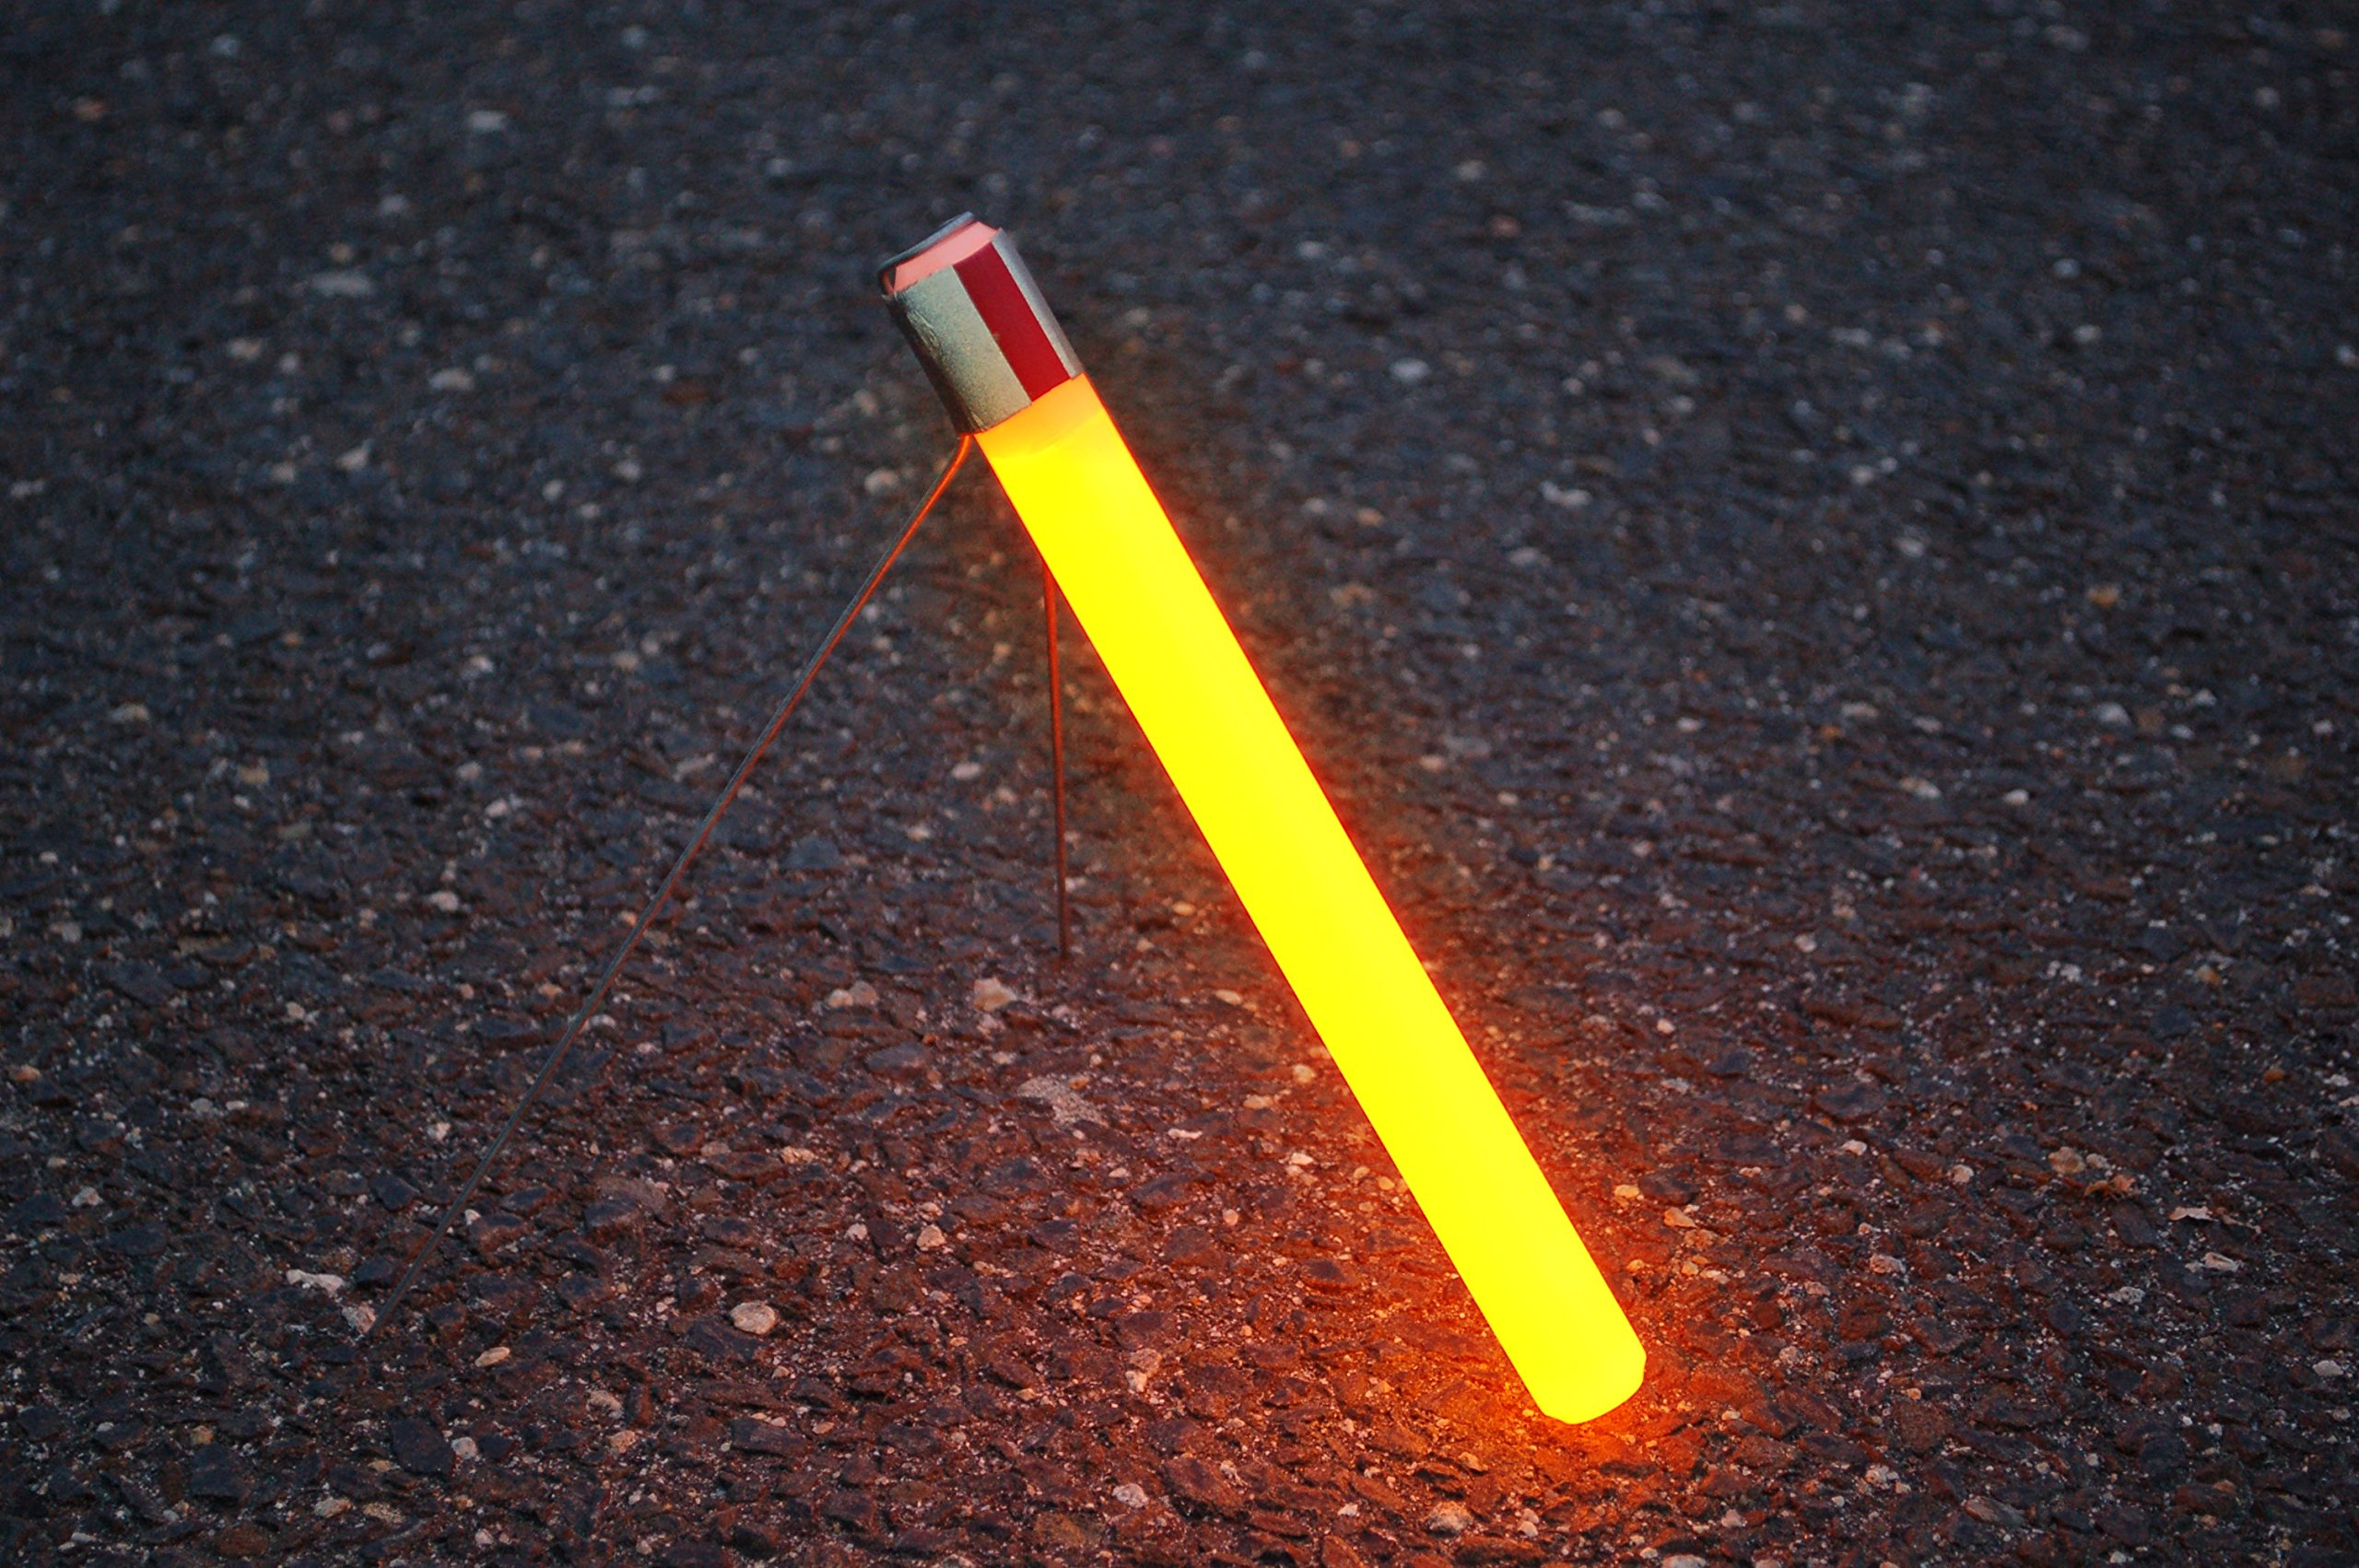 """Cyalume Industrial Grade SnapLight Flare Alternative Chemical Light Sticks with Bipod Stand – Non-Flammable, Waterproof Light Stick is a Safer Alternative to Pyrotechnic Flares, Provides 2 Hours of Bright Light – Green, 10"""" Long (Pack of 10) by Cyalume (Image #4)"""